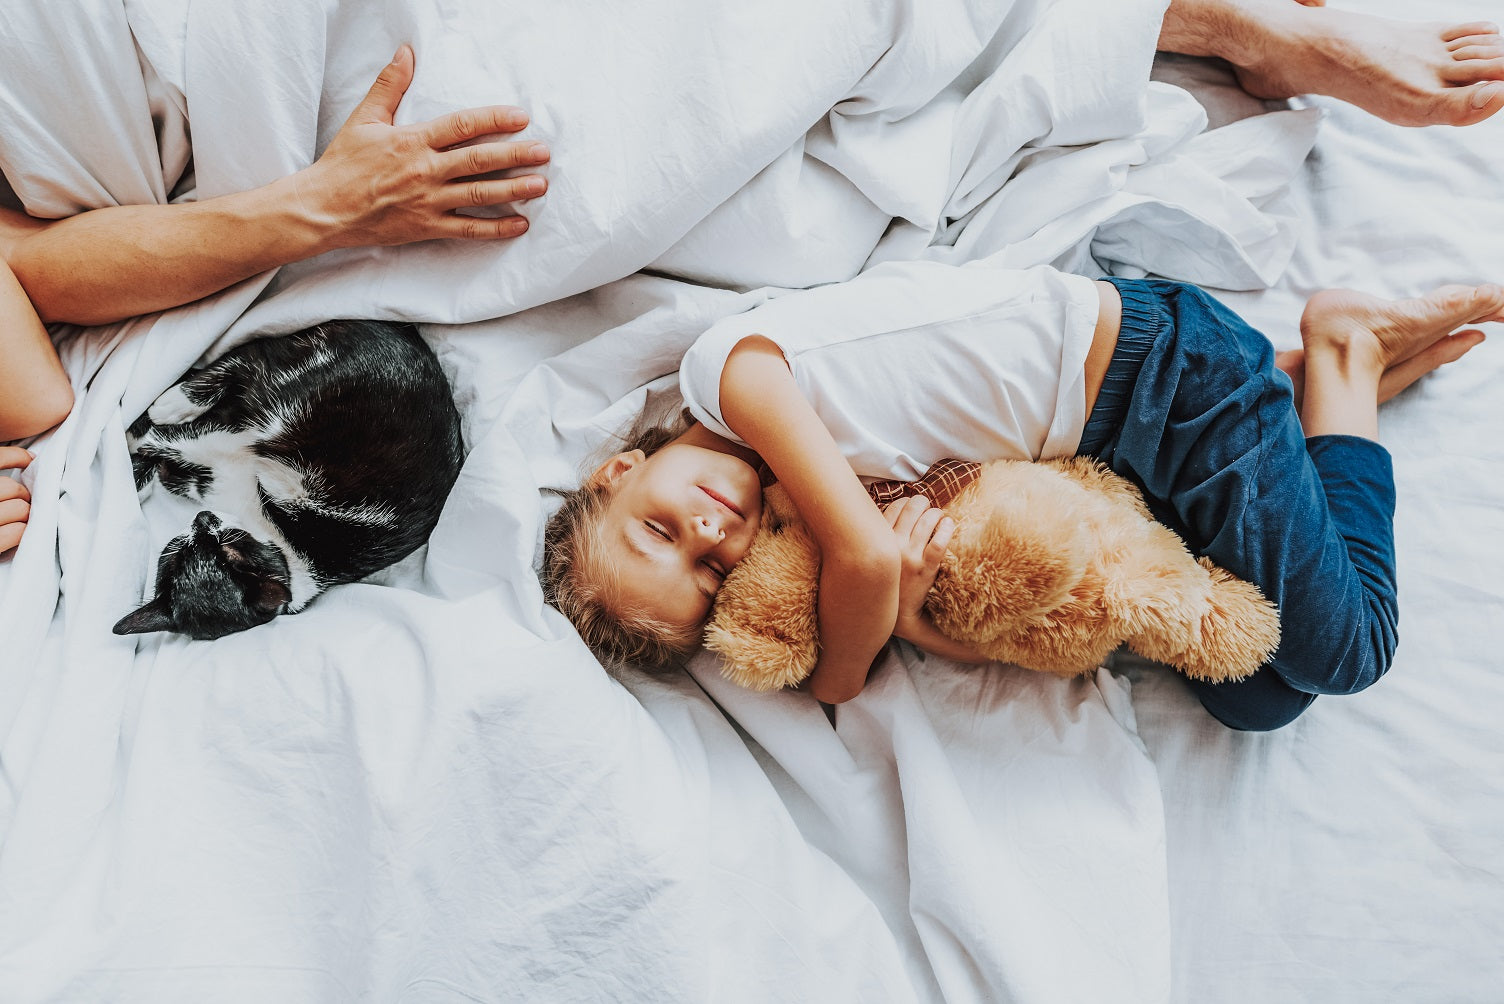 cat, man and child holding teddy bear sleep on king bed